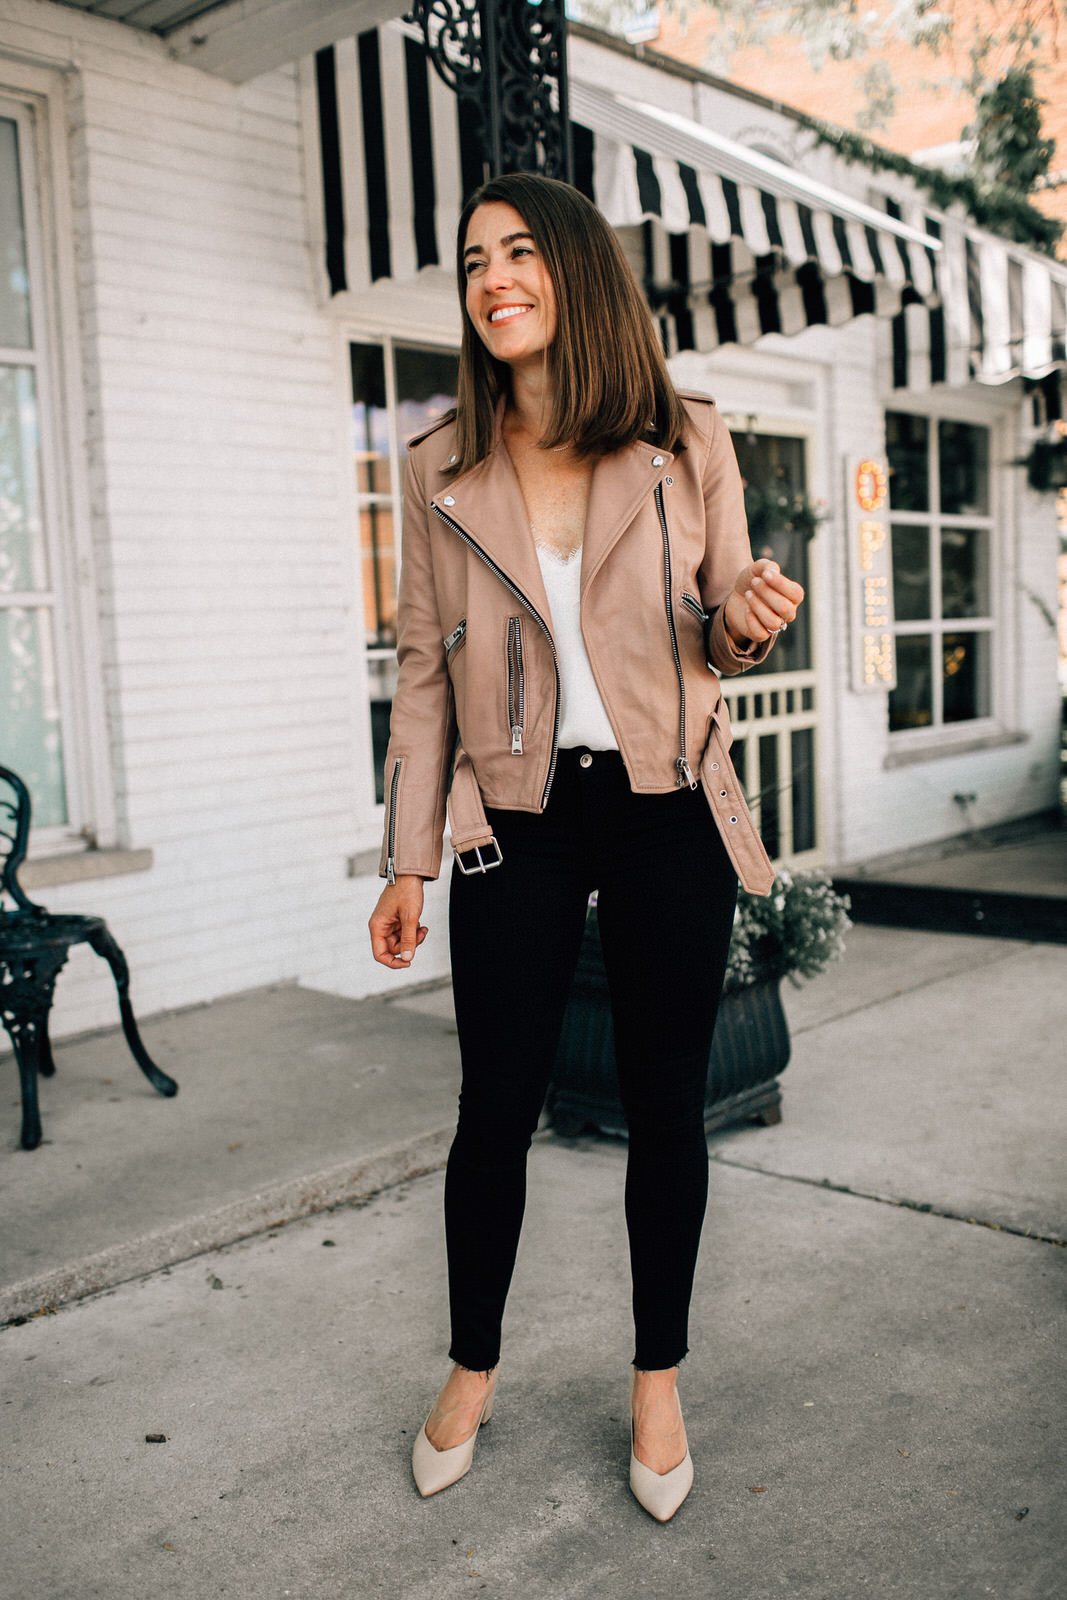 nordstrom anniversary sale outfit allsaints leather jacket white lace cami rag & bone jeans